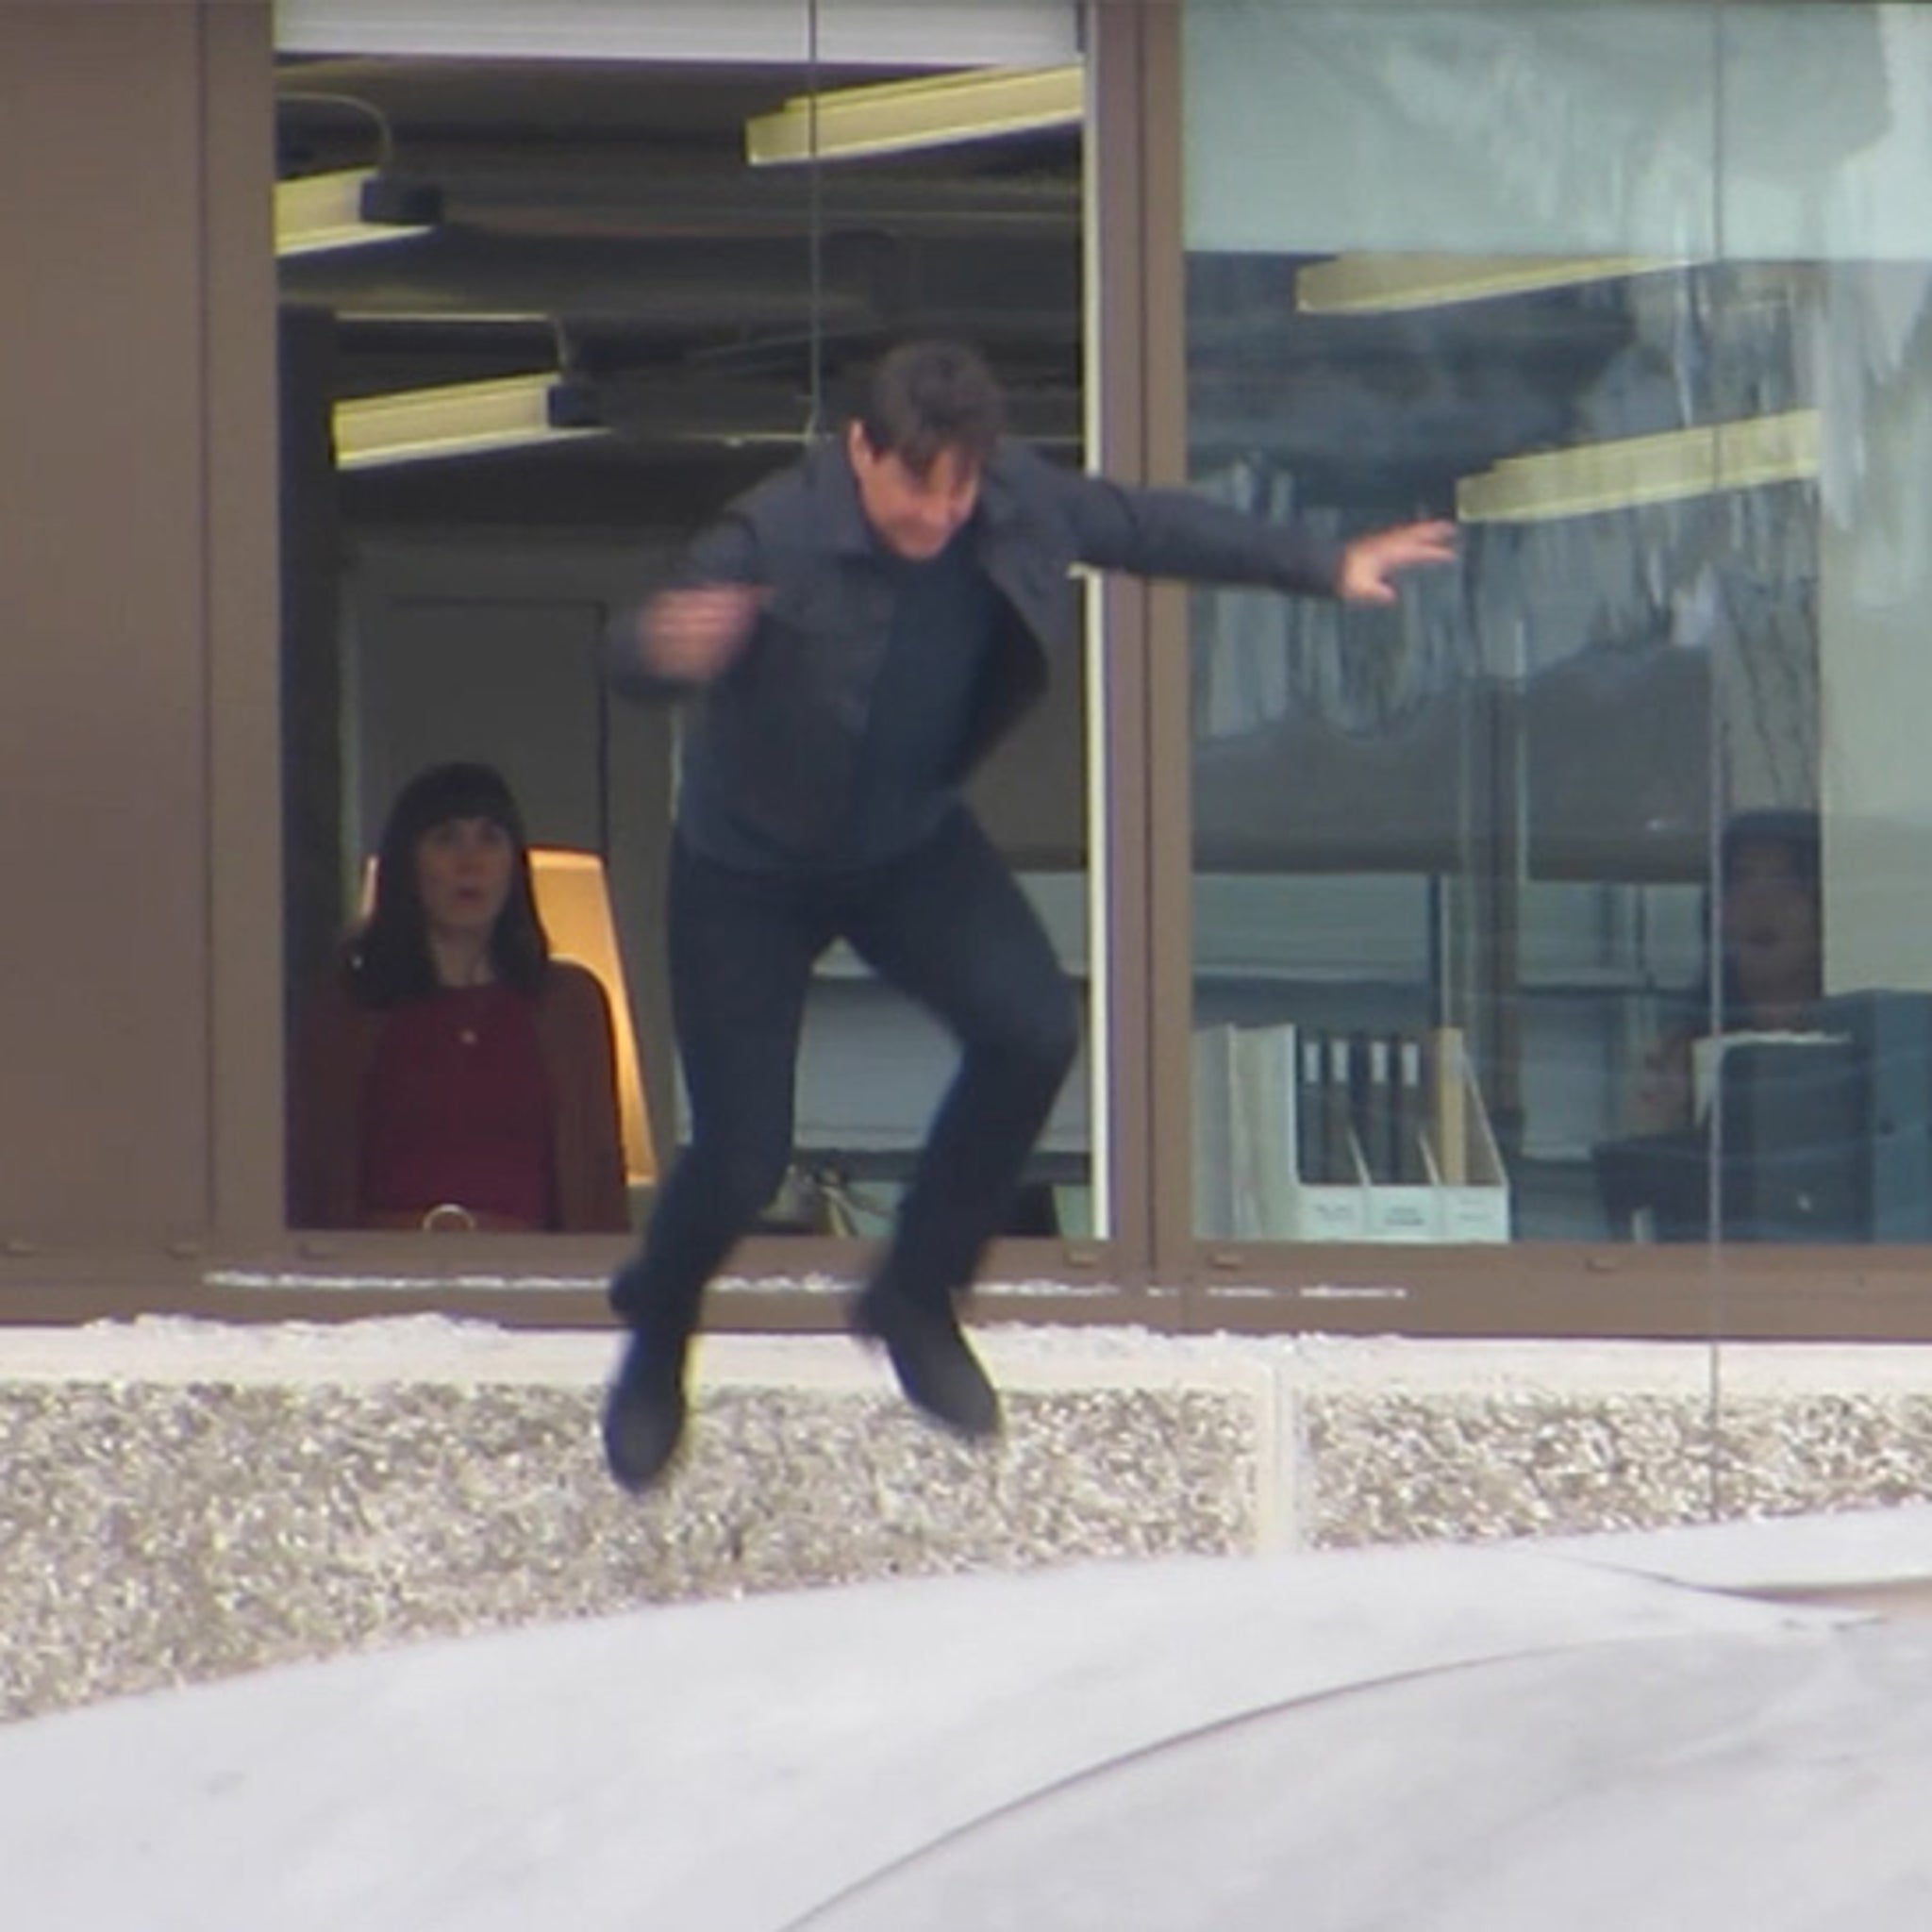 Tom Cruise Makes Second Attempt at 'Mission: Impossible' Stunt After